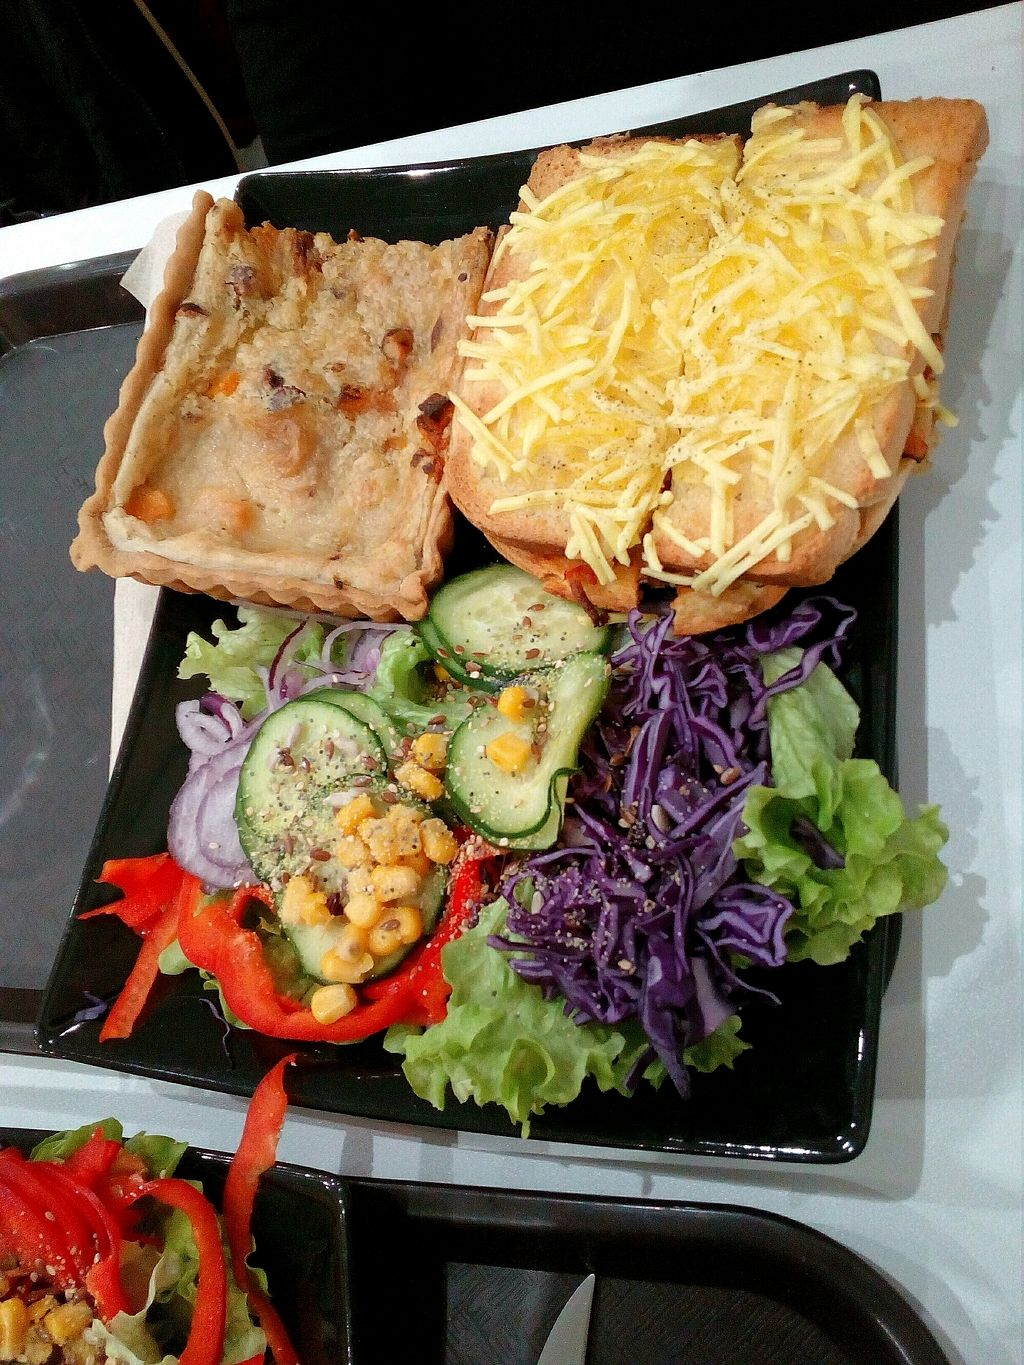 """Photo of Veggie Corner  by <a href=""""/members/profile/wyrd"""">wyrd</a> <br/>hazelnuts quiche and bread and cheese and salad <br/> December 14, 2017  - <a href='/contact/abuse/image/90289/335516'>Report</a>"""